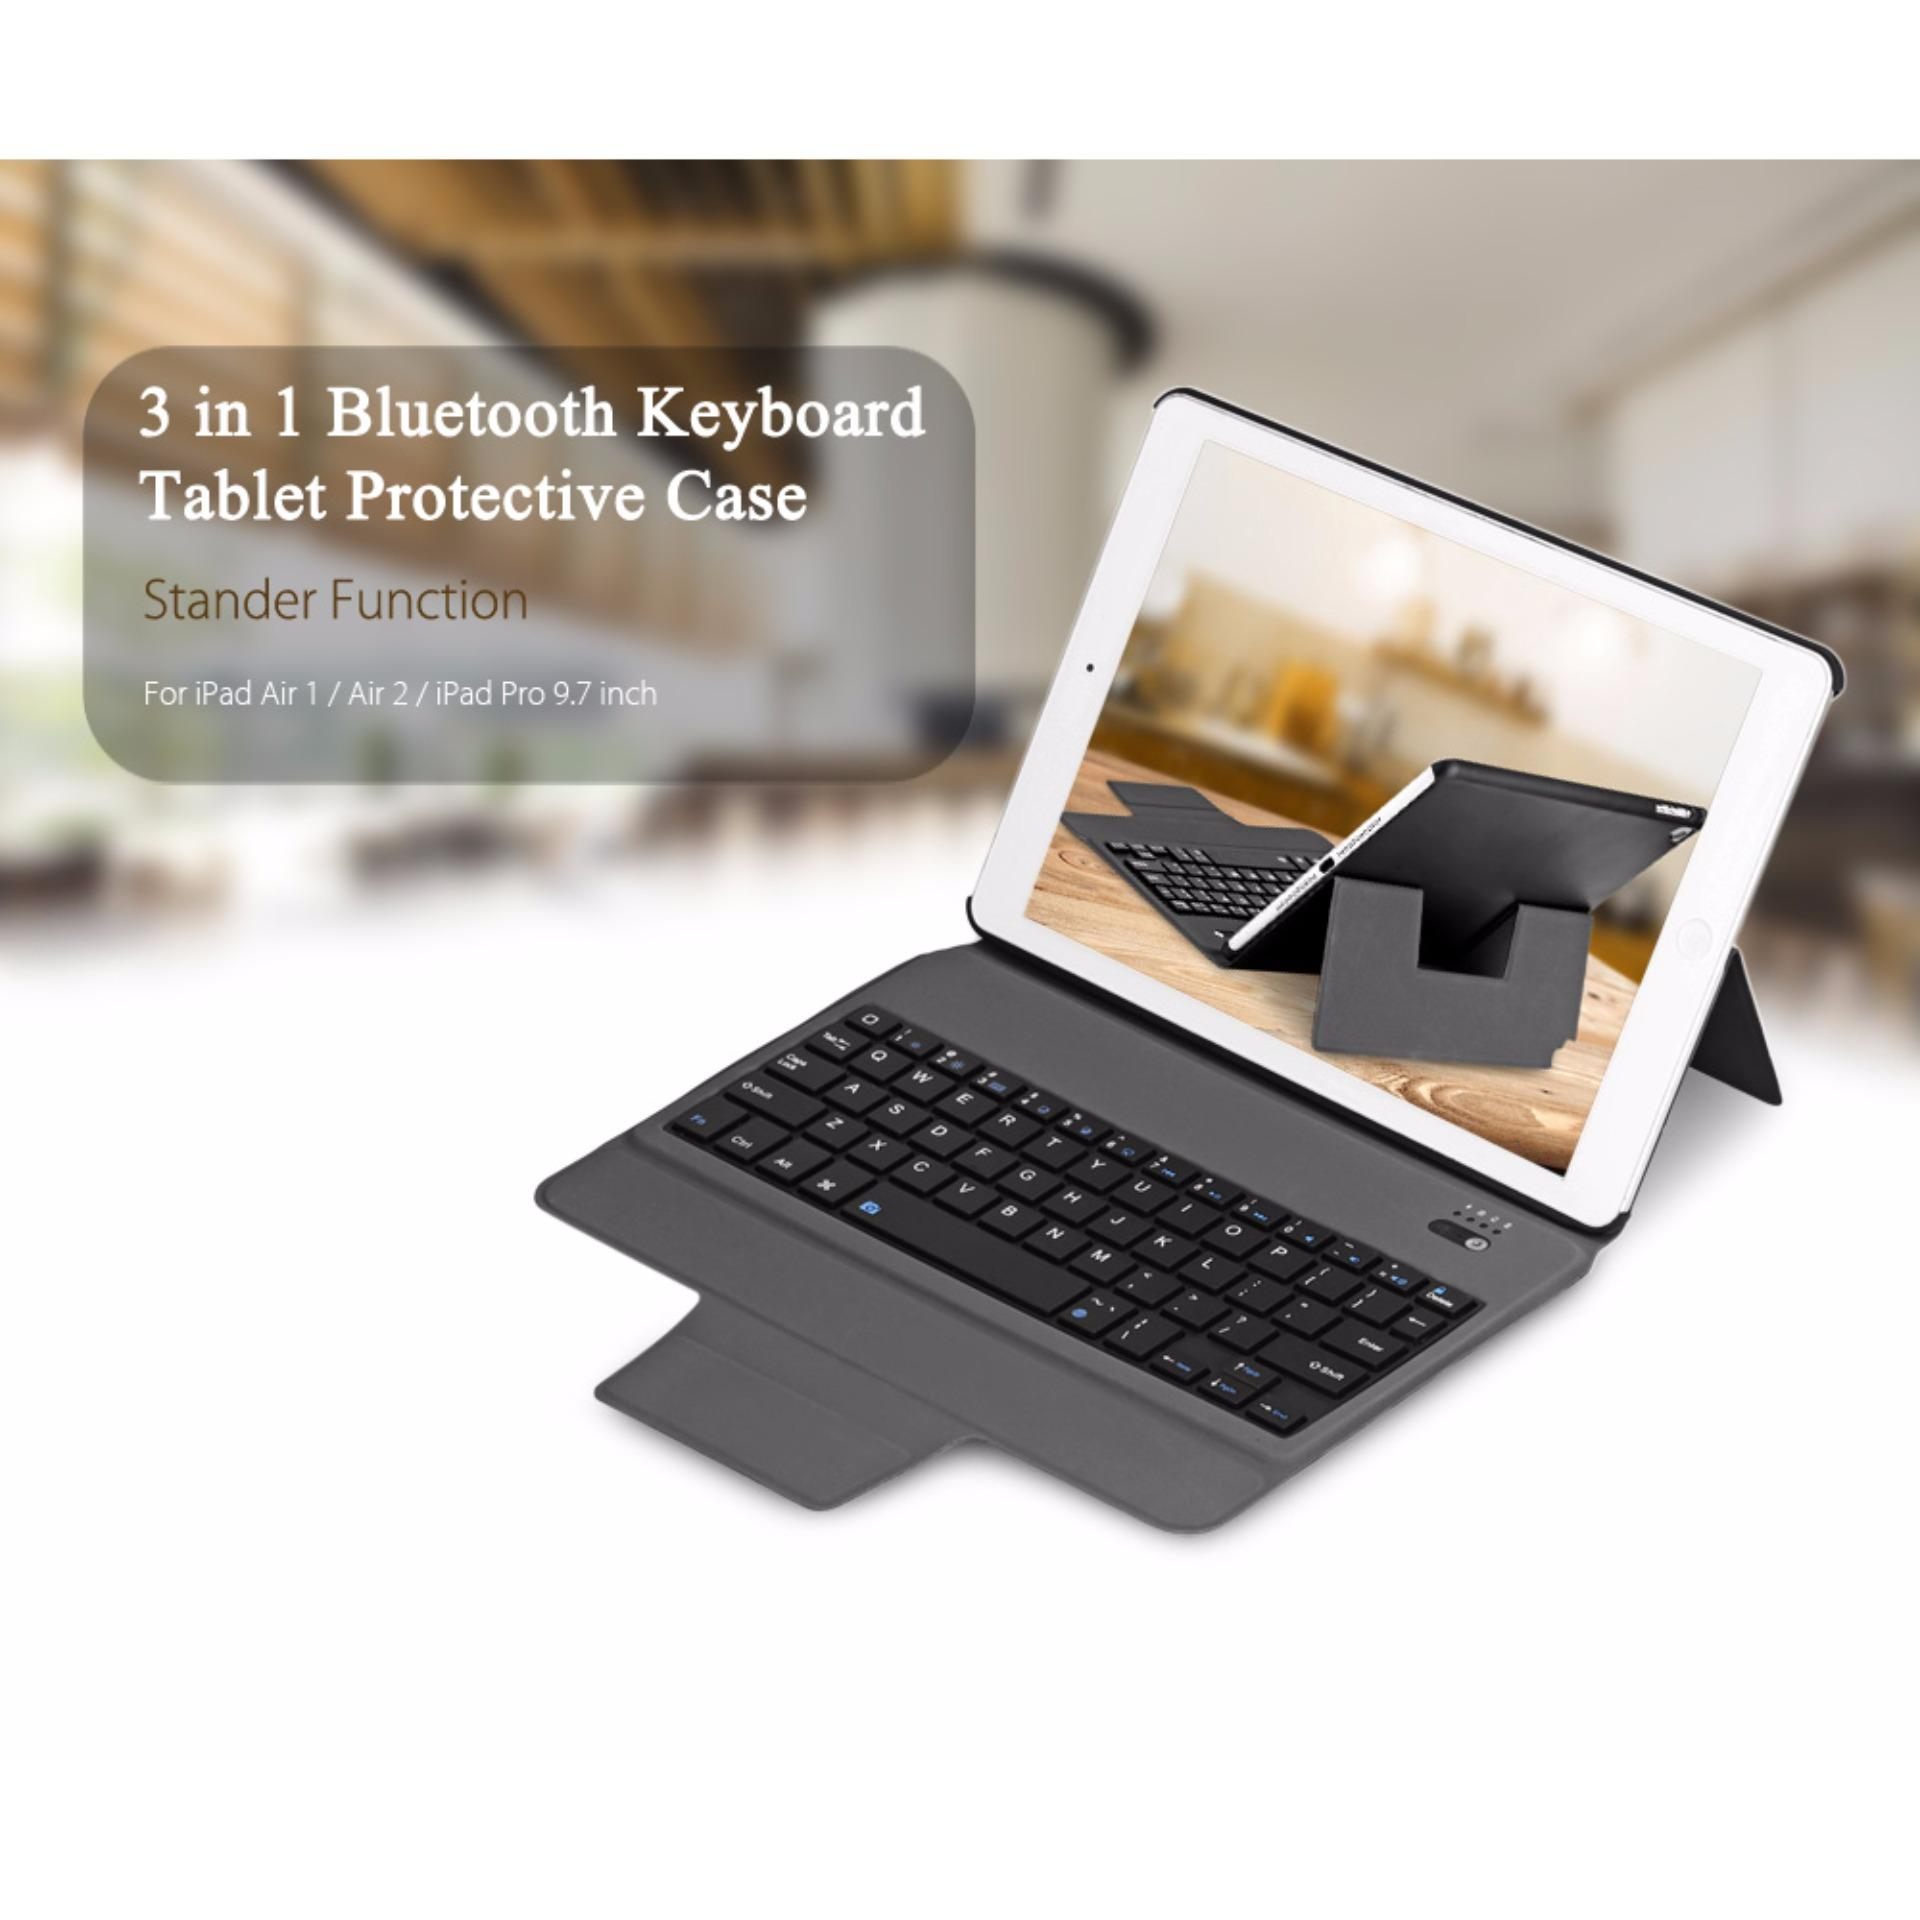 3 in 1 Universal Bluetooth Keyboard Tablet Protective Case with Stander for iPad Air 1 /